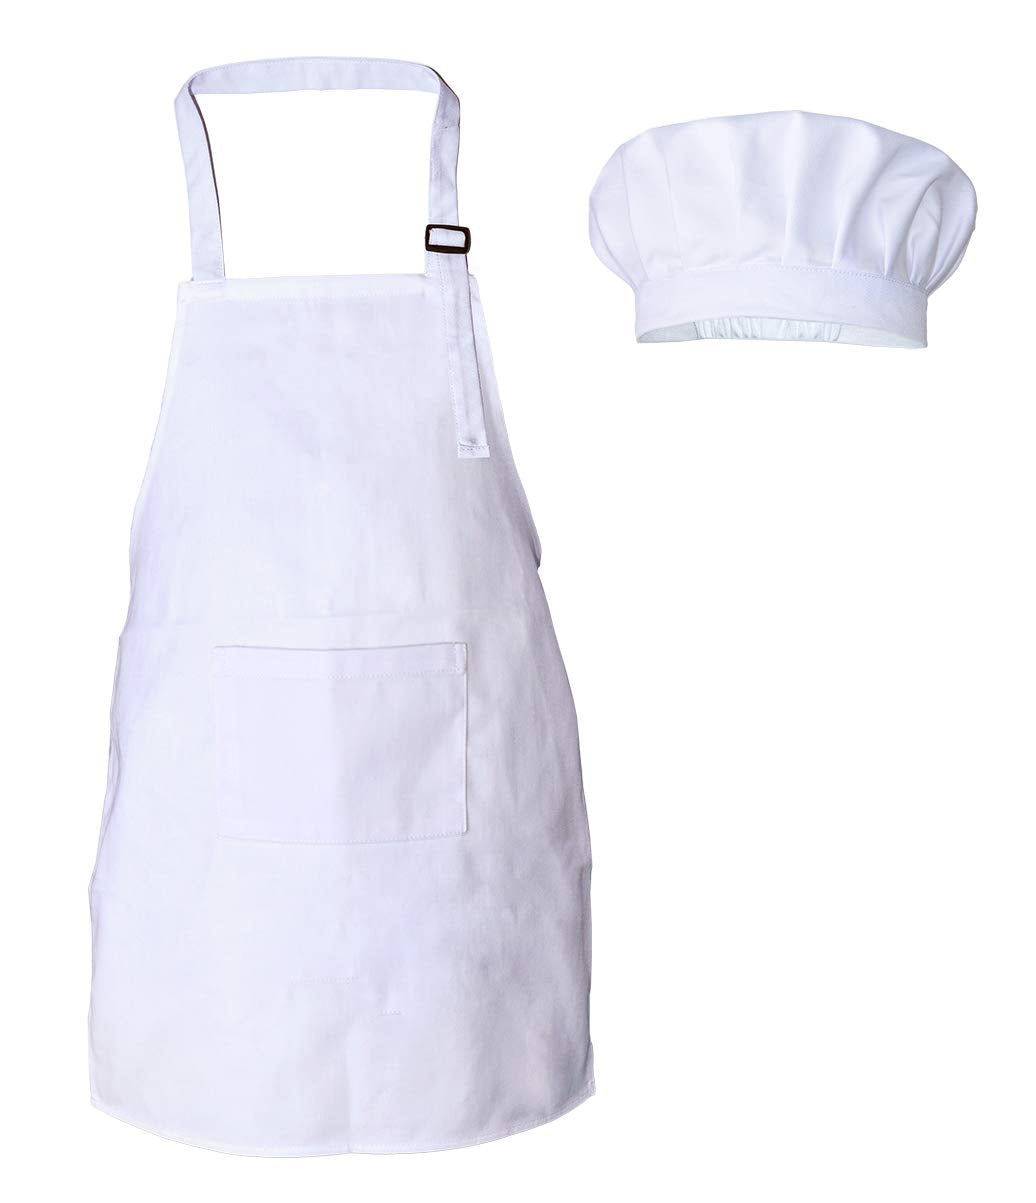 Kids Chef Apron and Hat Set, Cotton Material Child Chef Costume, Perfect for Under the Age of 10 Children Cooking, Baking, Painting (White)